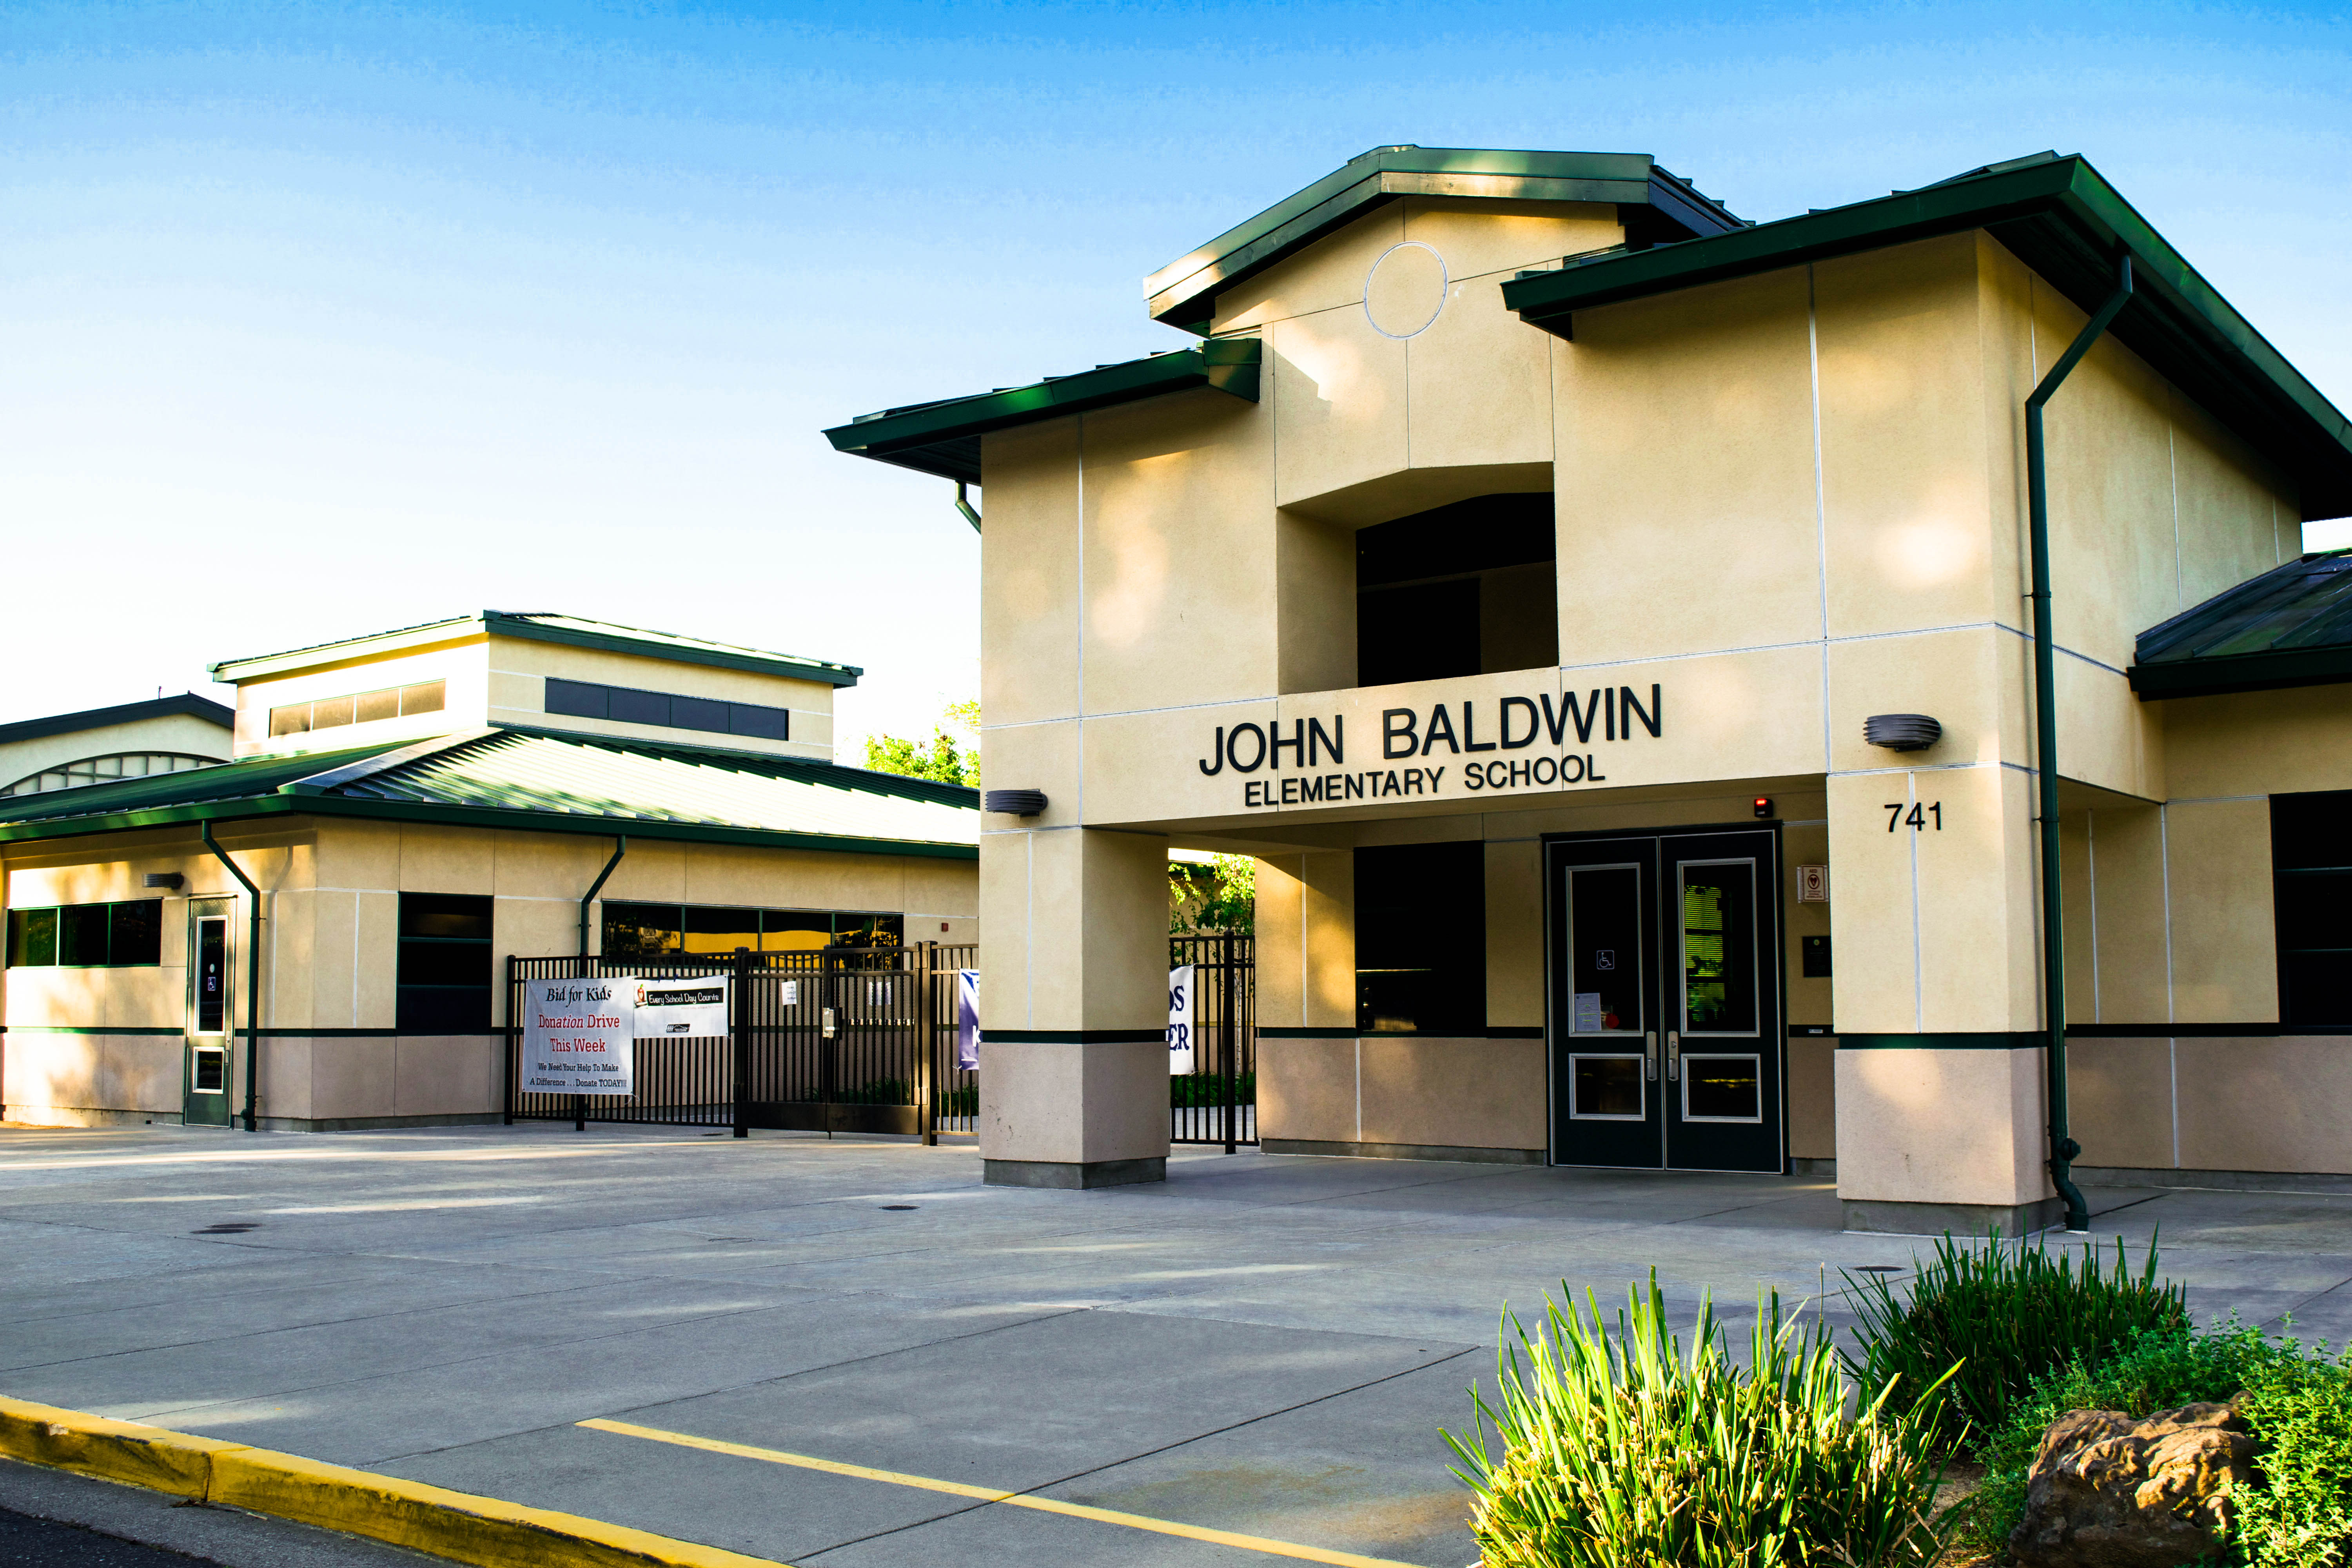 John Baldwin Elementary School main entrance